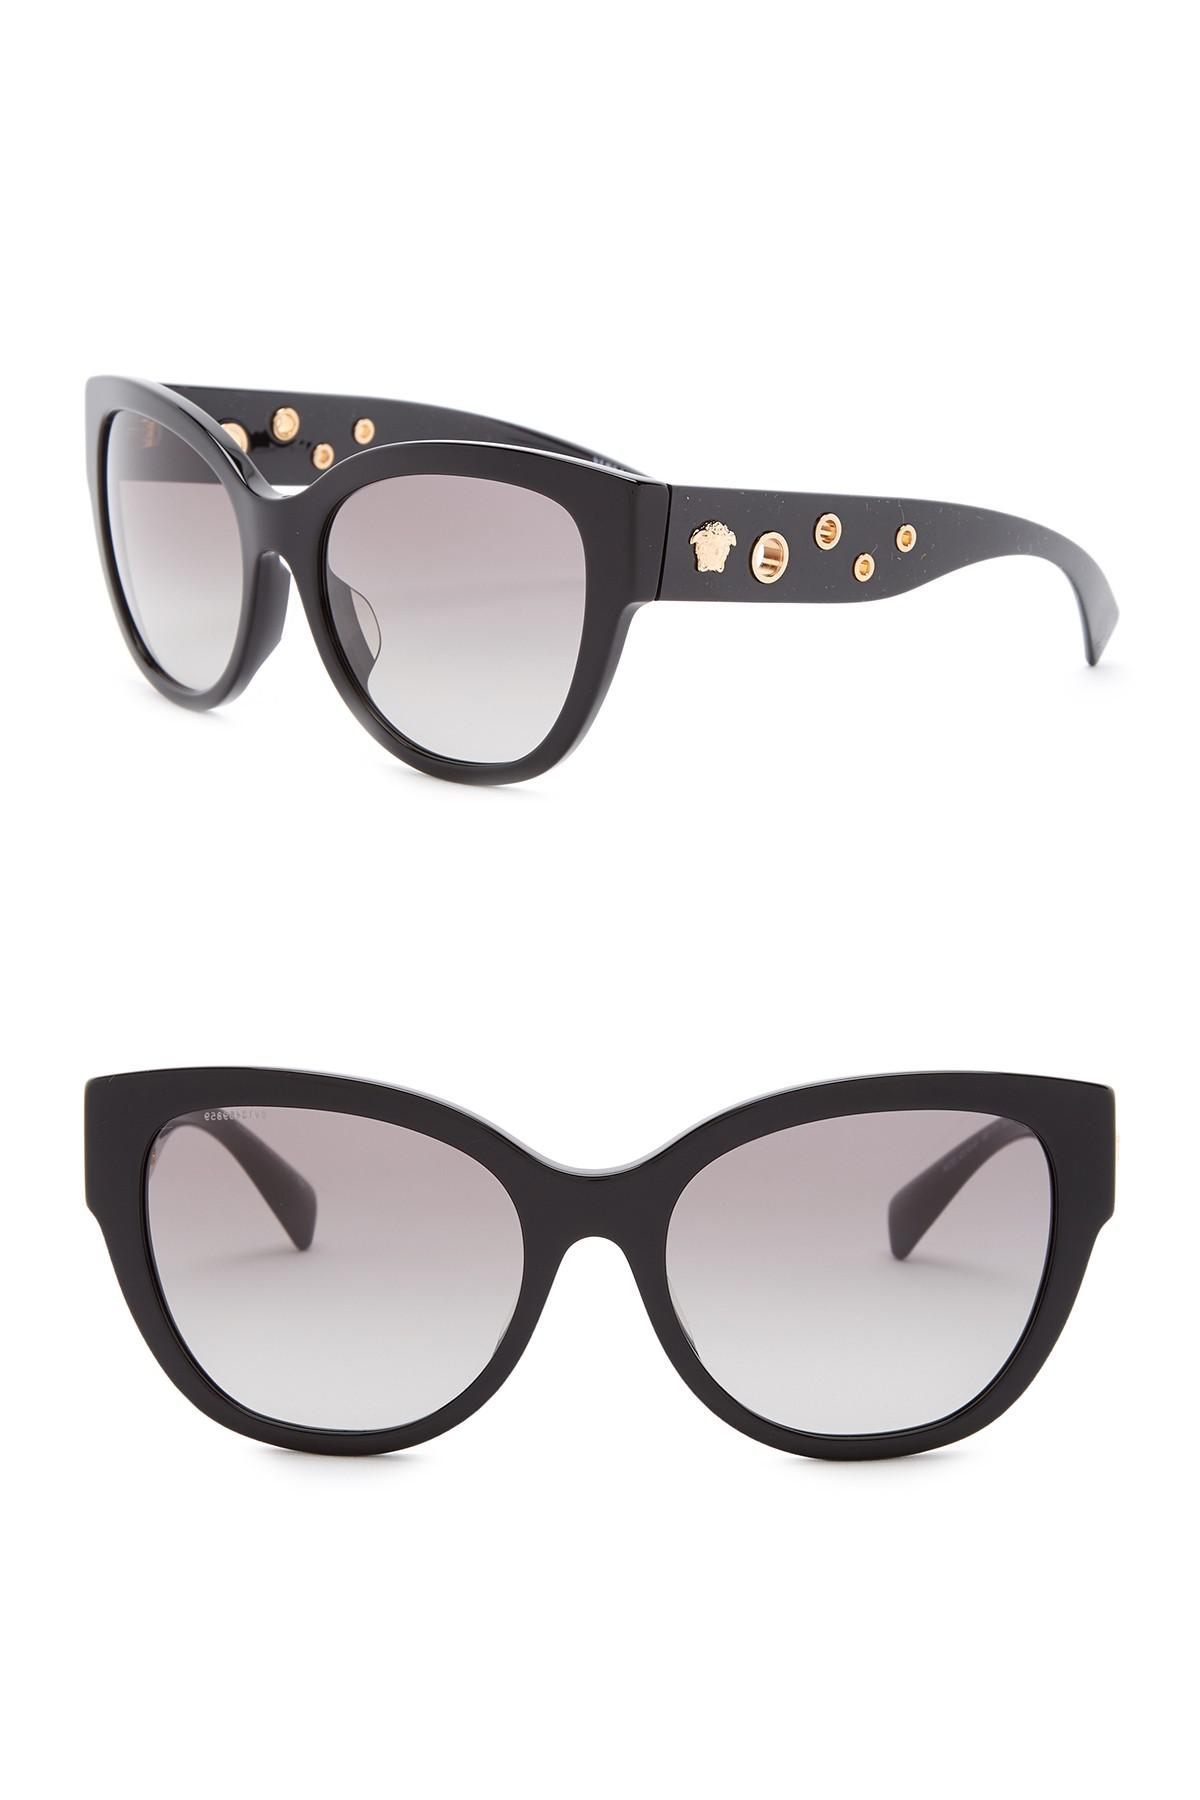 2780483aa6 Lyst - Versace 56mm Cat Eye Butterfly Rock Icons Sunglasses in Black